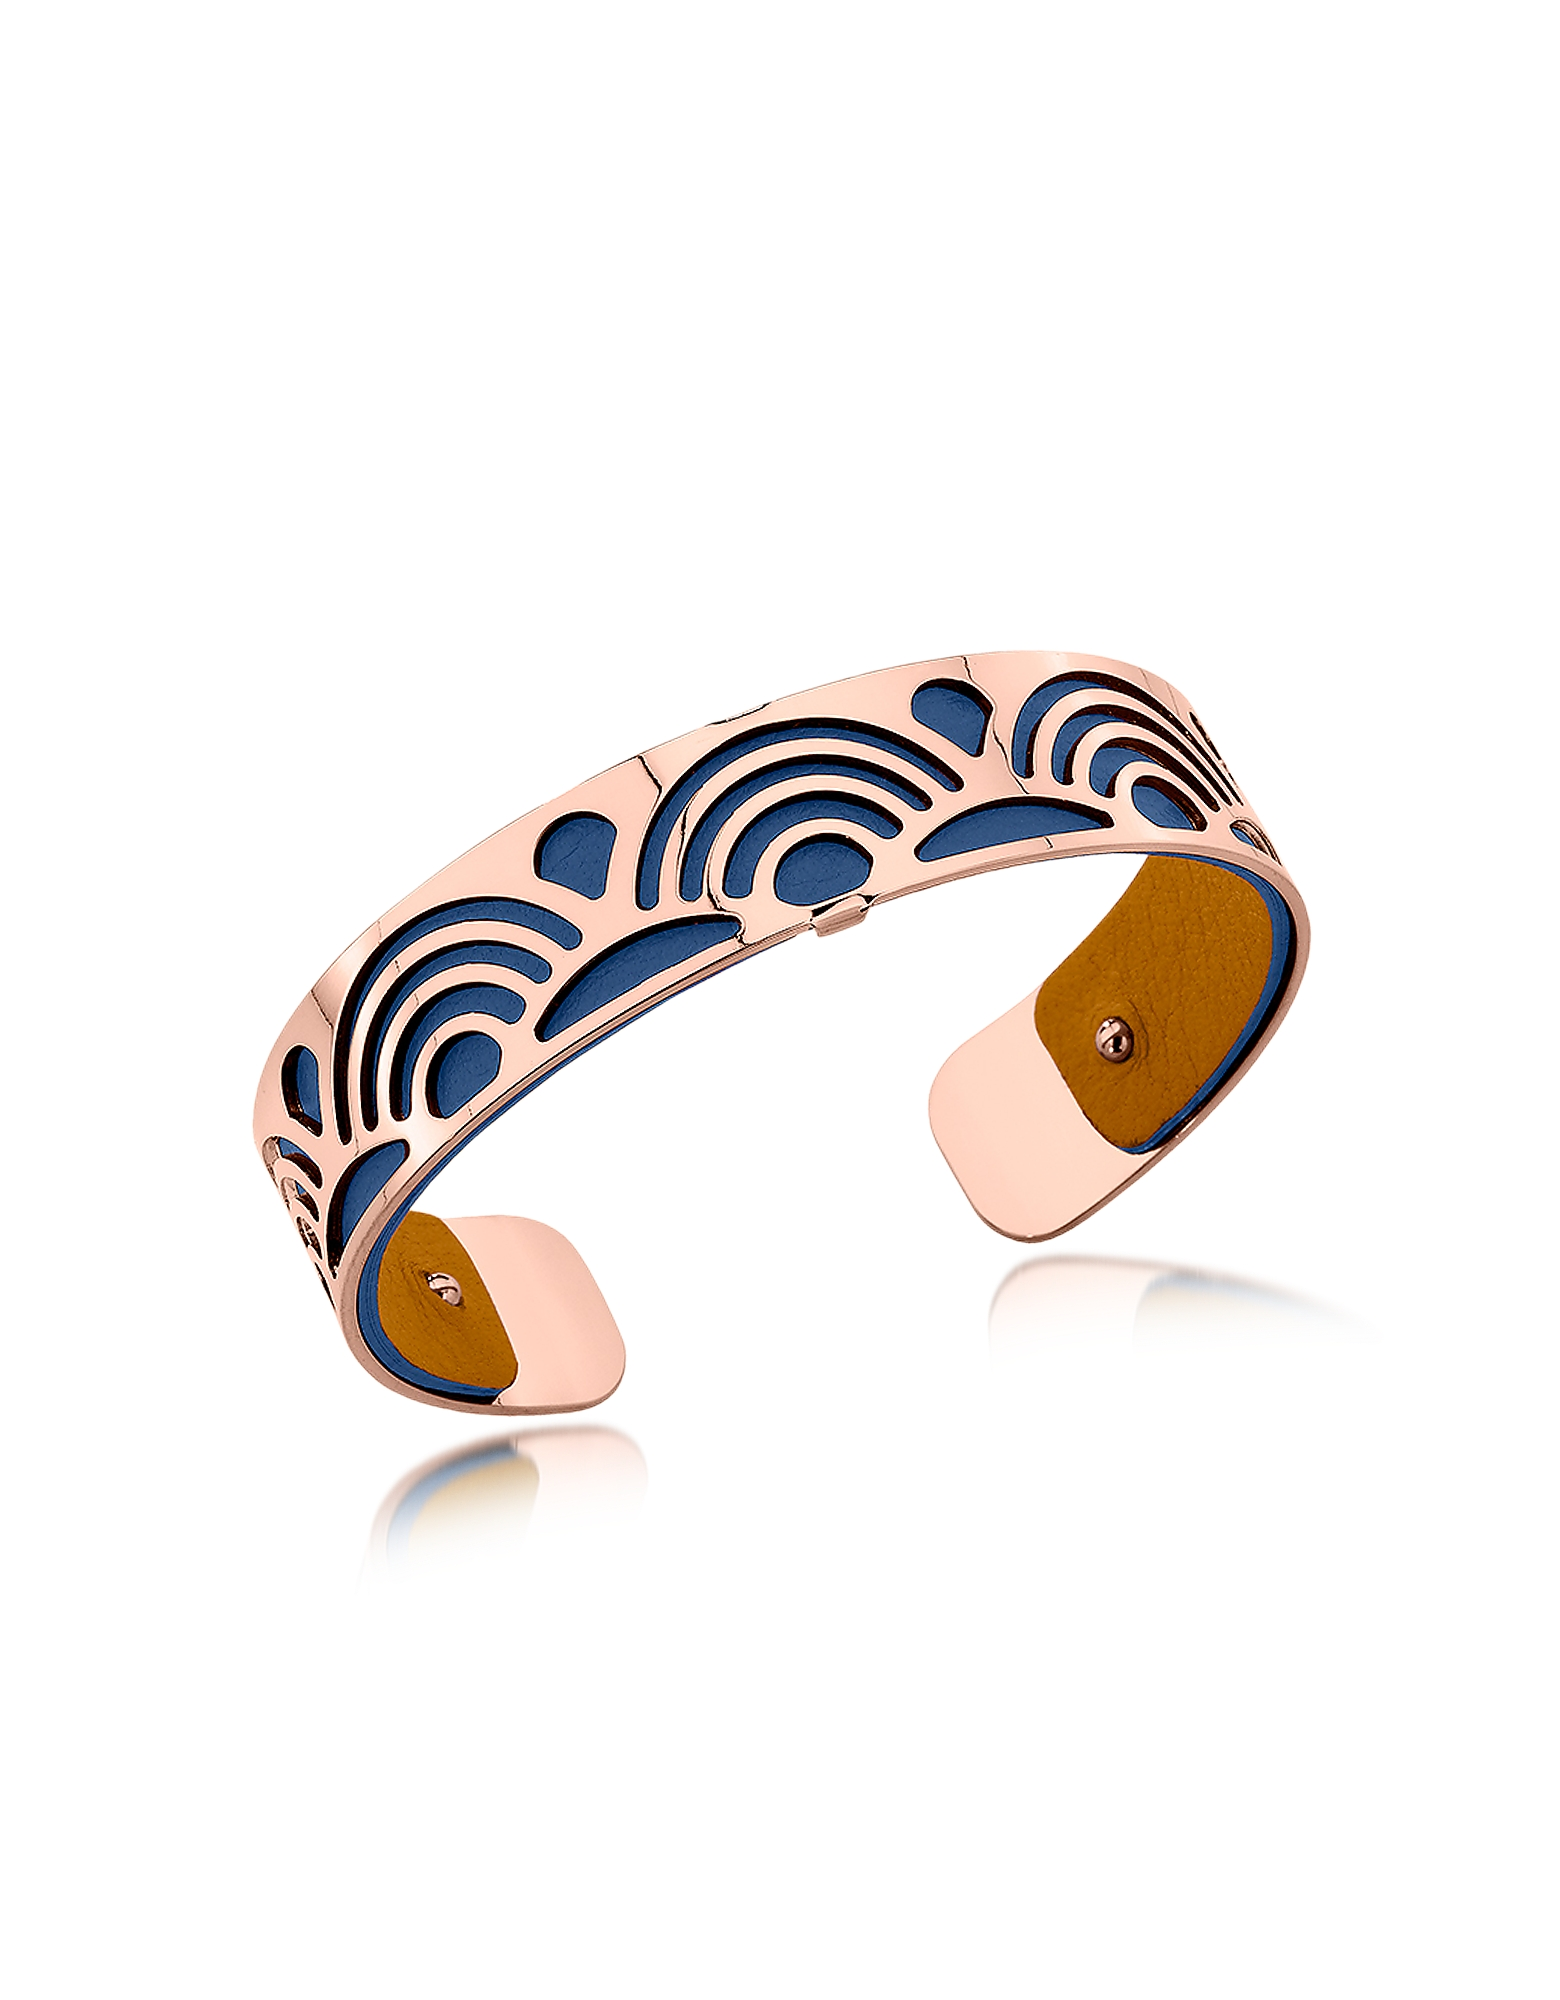 Les Georgettes Bracelets, Small Poisson Rose Gold Plated Bracelet w//Navy Blue and Beige Reversible